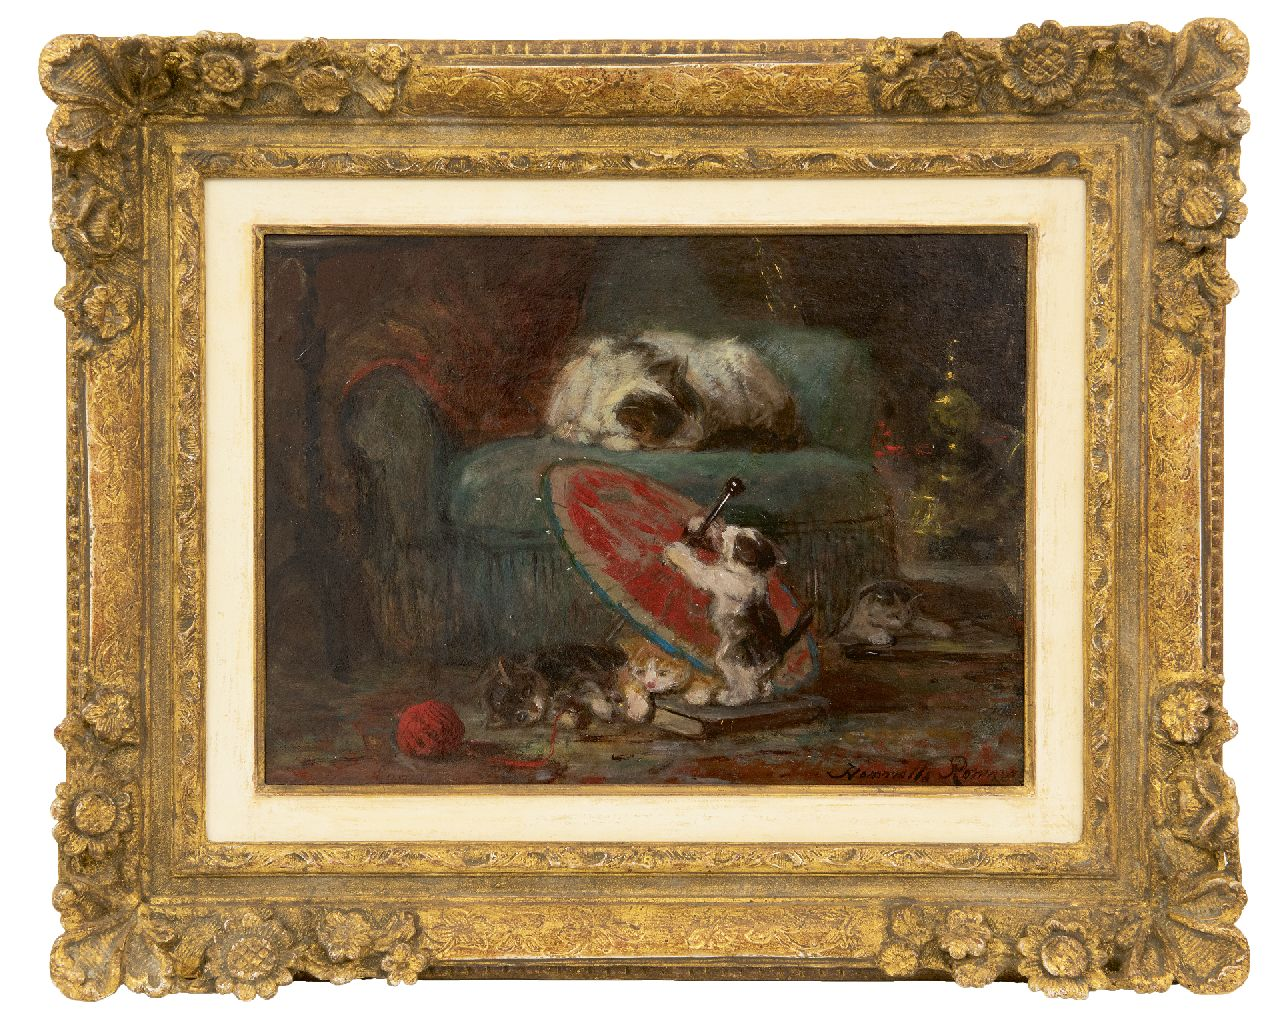 Ronner-Knip H.  | Henriette Ronner-Knip, Kittens playing with a Japanese parasol, oil on paper laid down on panel 27.3 x 36.8 cm, signed l.r. and l.l. and painted ca. 1890